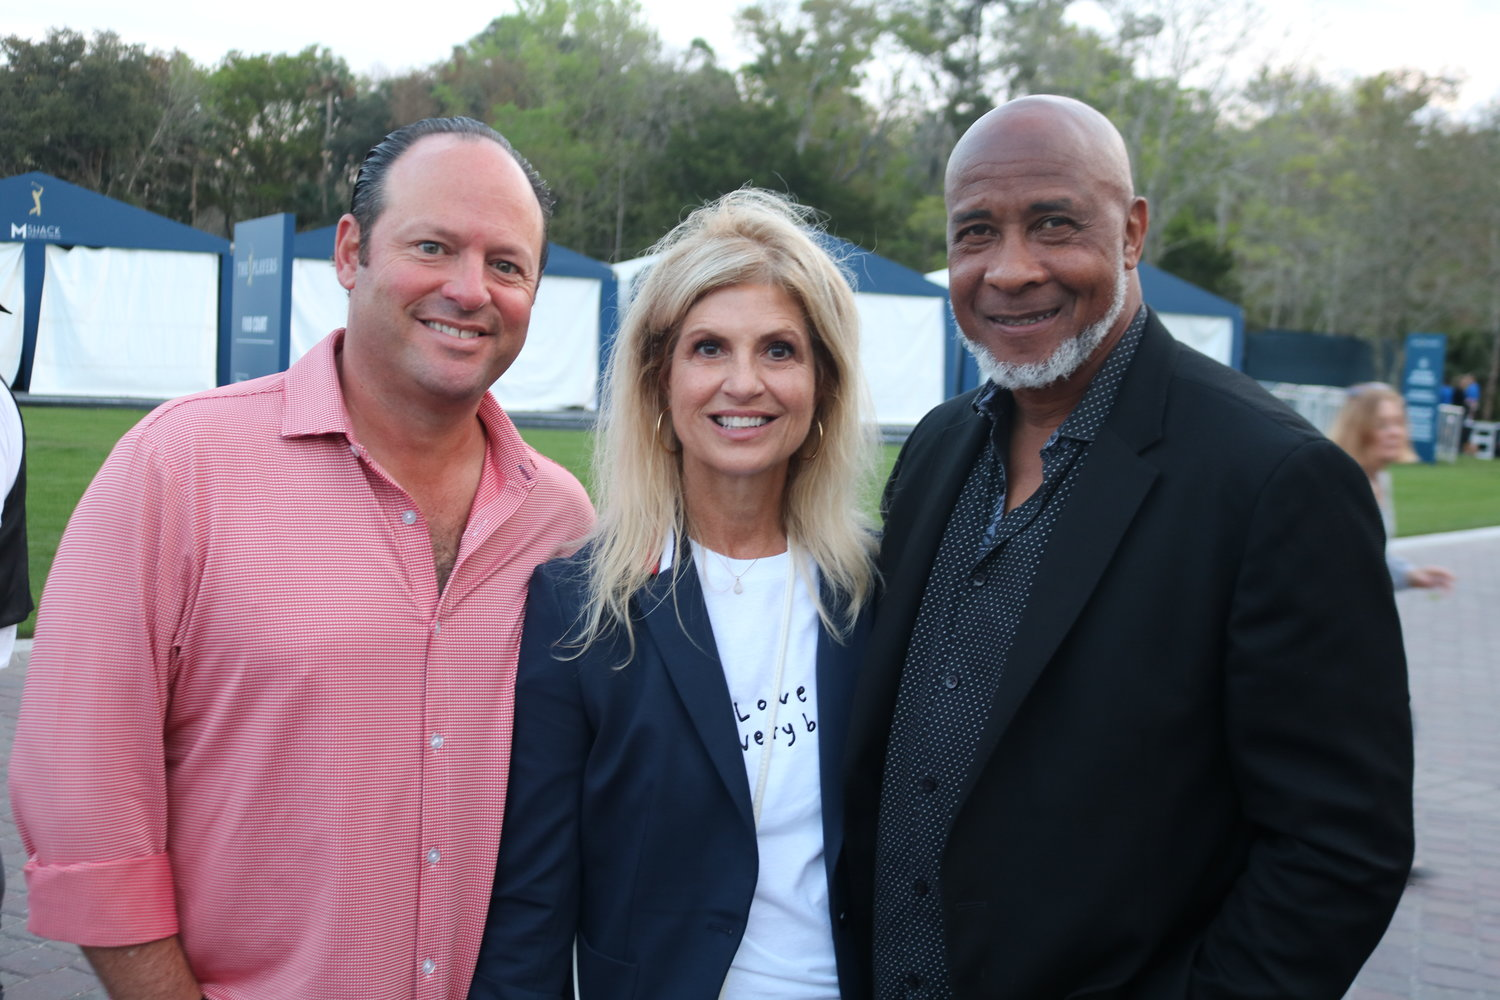 Lee and Tammy Kaplan with Lynn Swann at the concert